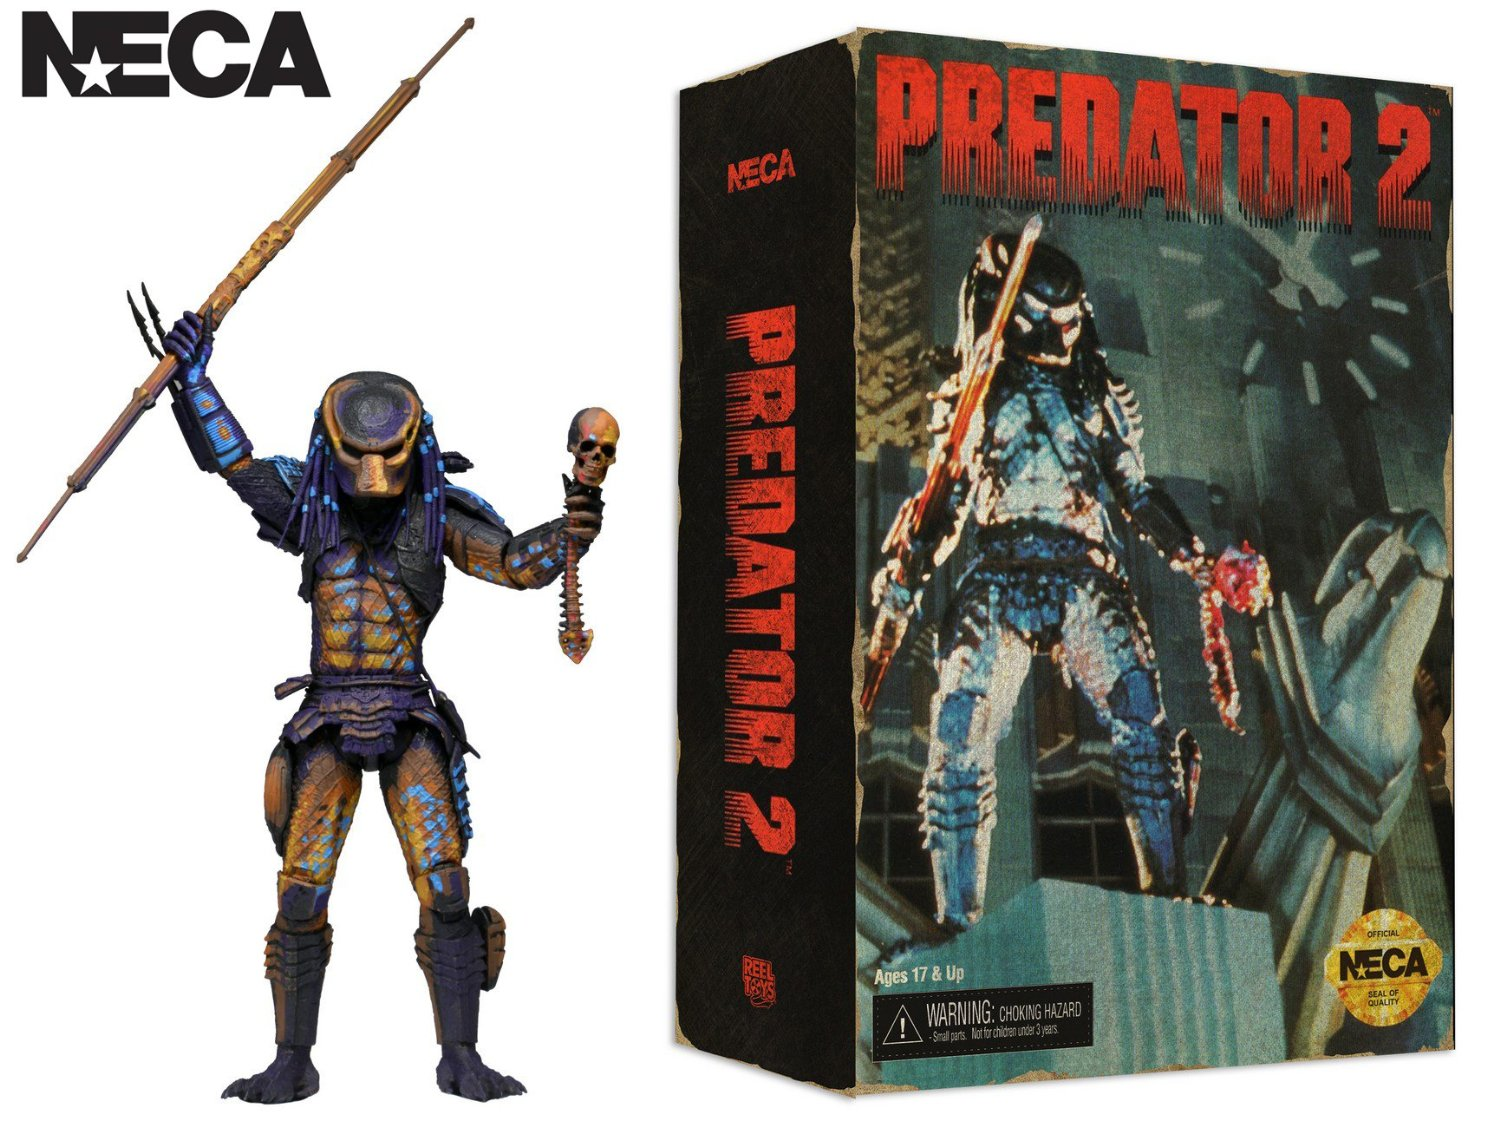 NECA Predators 2 PVC Action Figure Collectible Model Toy Classic Toys 7 18cm free shipping neca official 1979 movie classic original alien pvc action figure collectible toy doll 7 18cm mvfg035